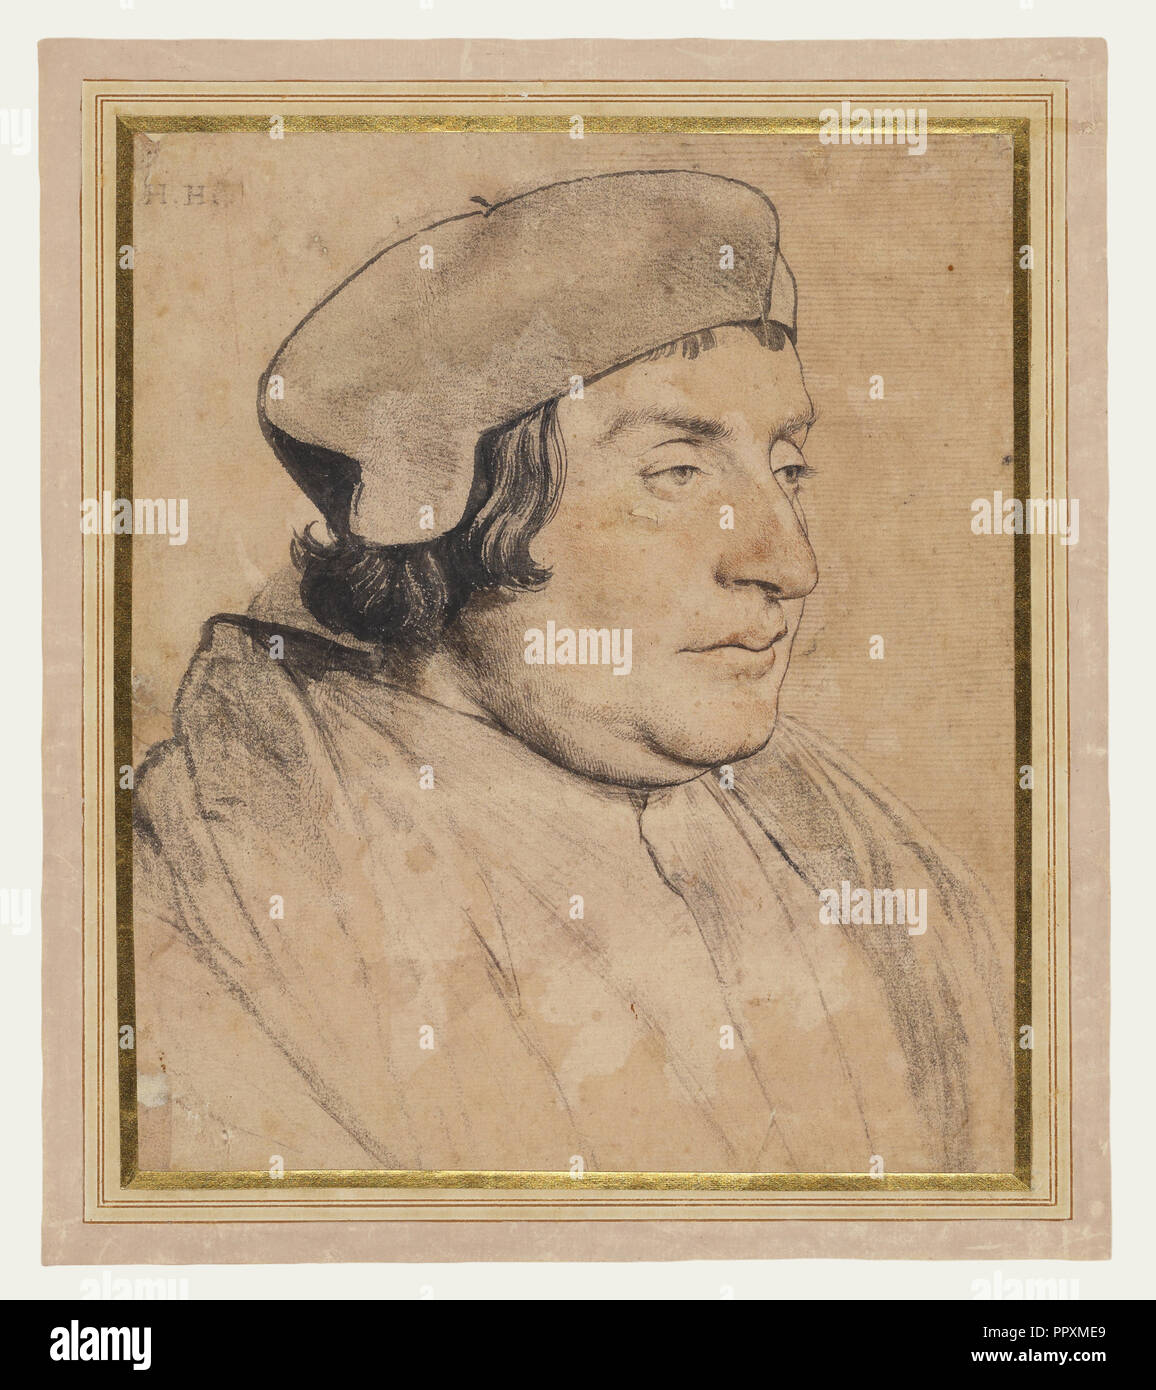 Portrait of a Scholar or Cleric; Hans Holbein the Younger, German, 1497,1498 - 1543, 1532 - 1535; Black and red chalk, pen - Stock Image